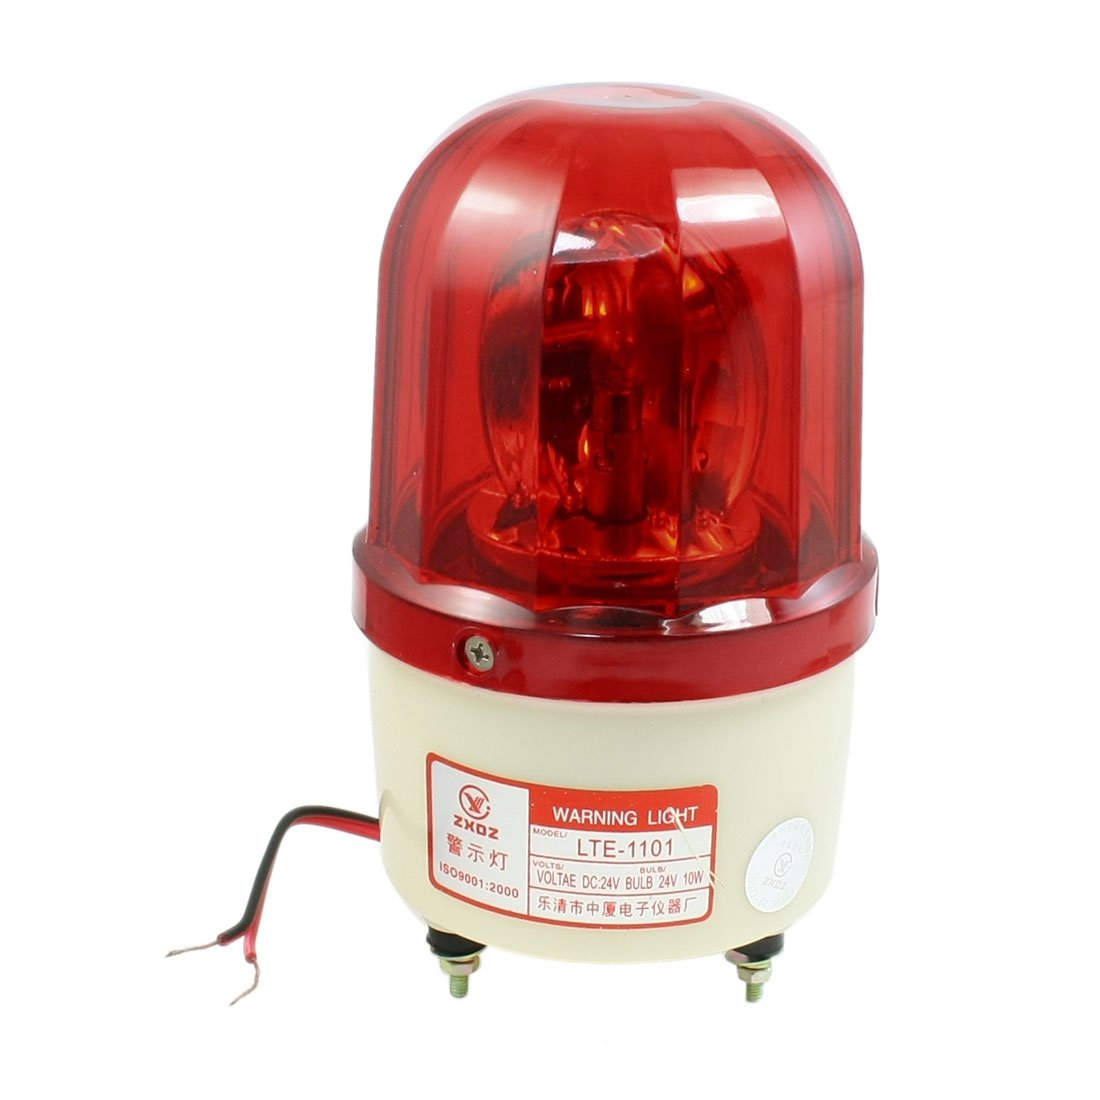 Red Rotating Flashing Light Signal Tower Industrial Lamp DC 24V 10W Sourcingmap